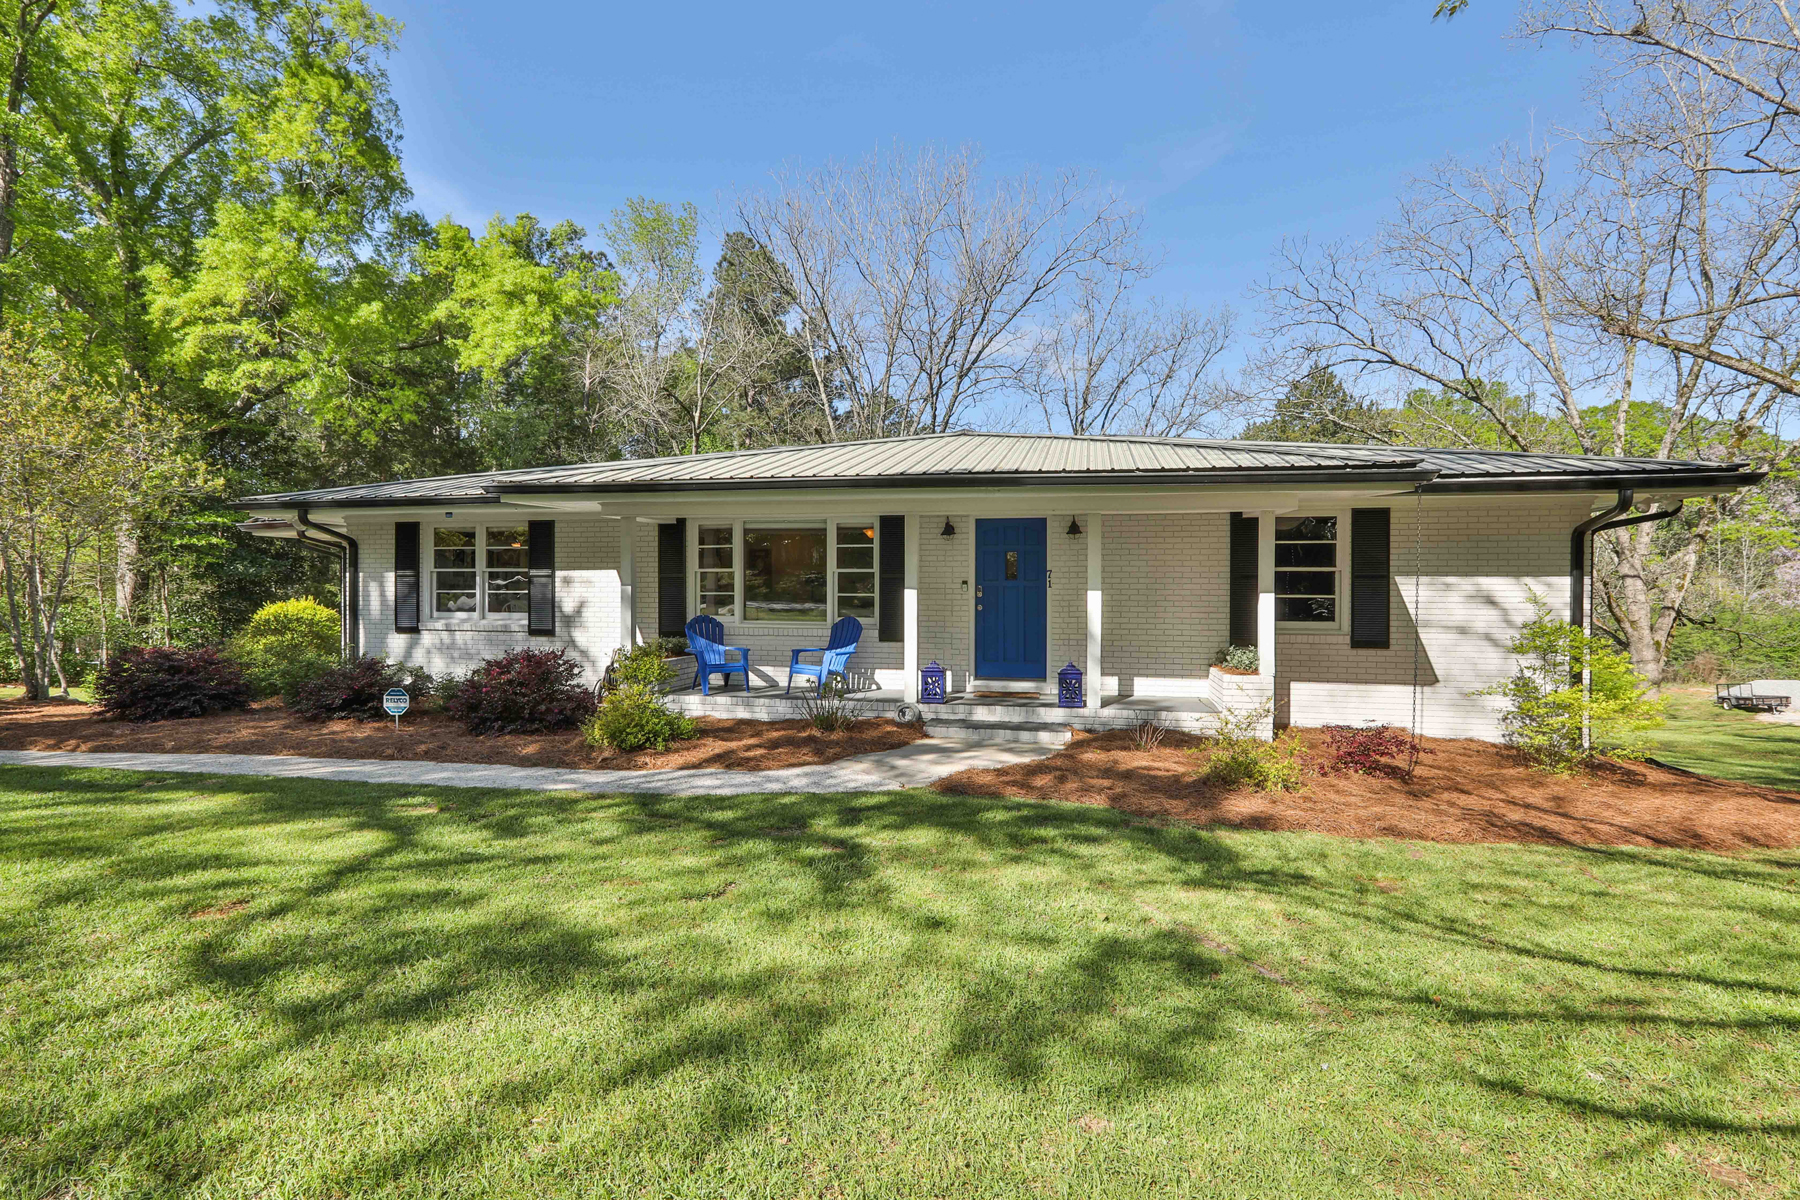 Single Family Homes のために 売買 アット What a Gem! Better than New Mid-Century Ranch 71 Luther Bailey Road, Senoia, ジョージア 30276 アメリカ